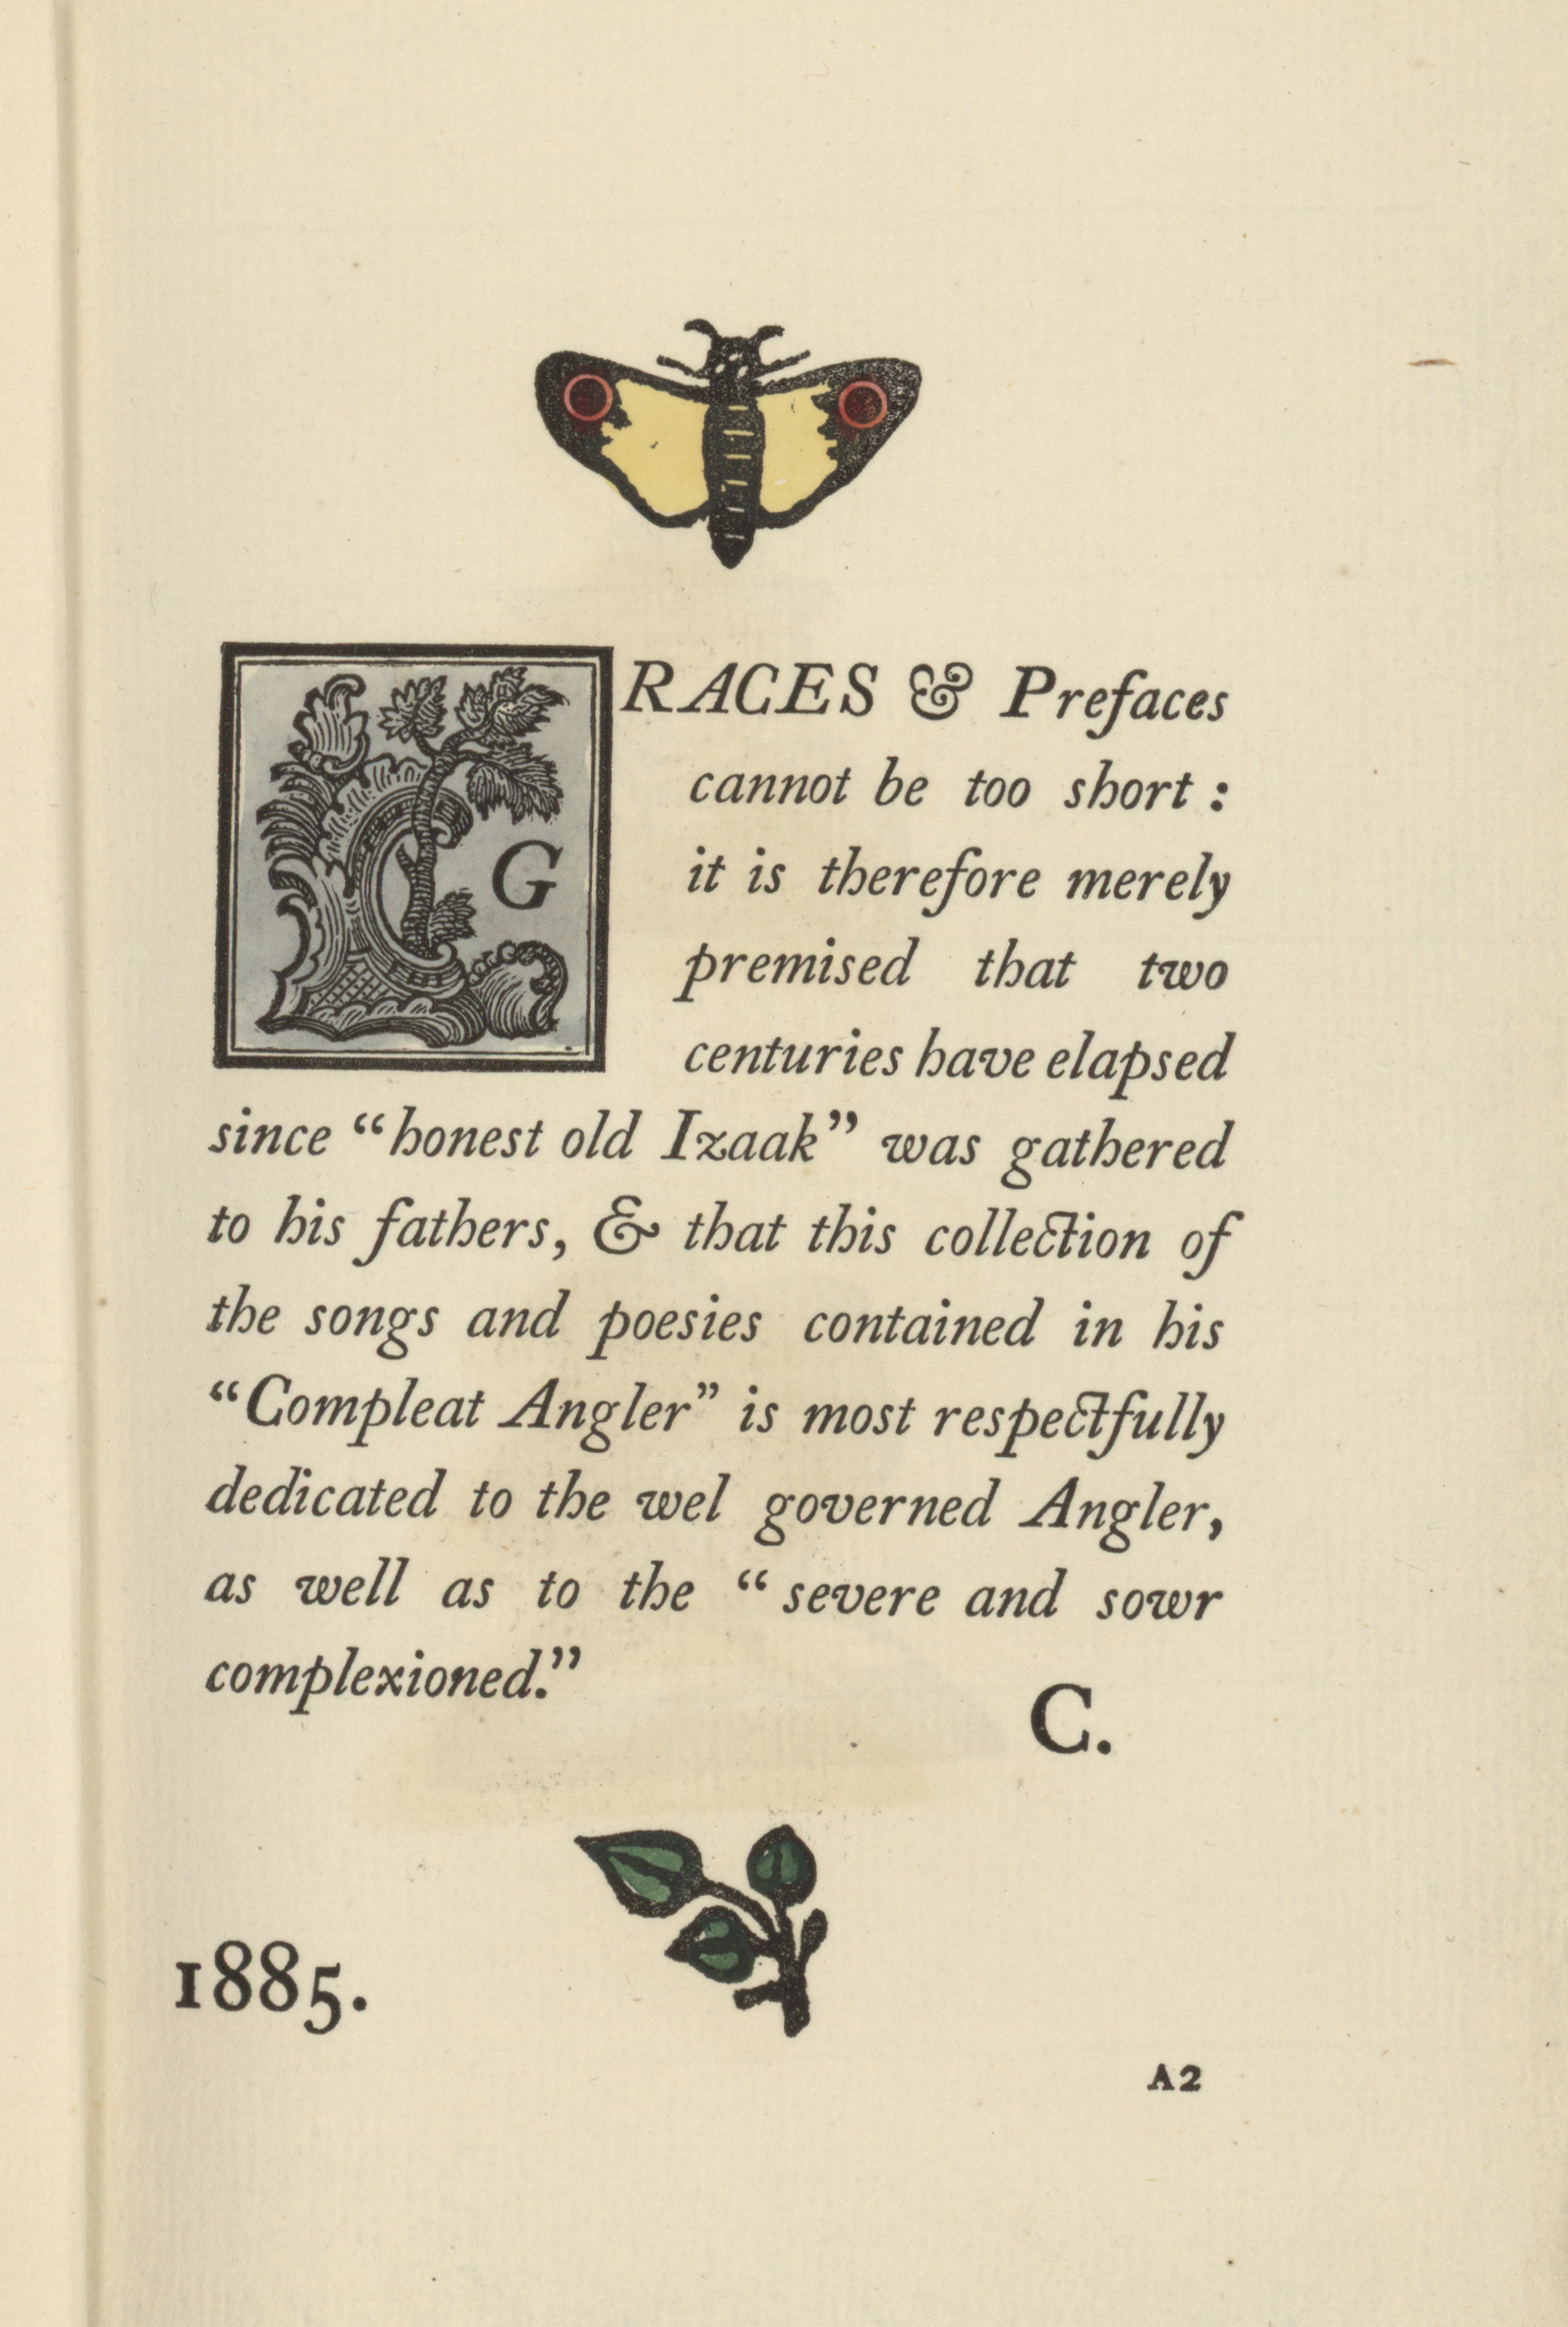 1855 Page with Moth